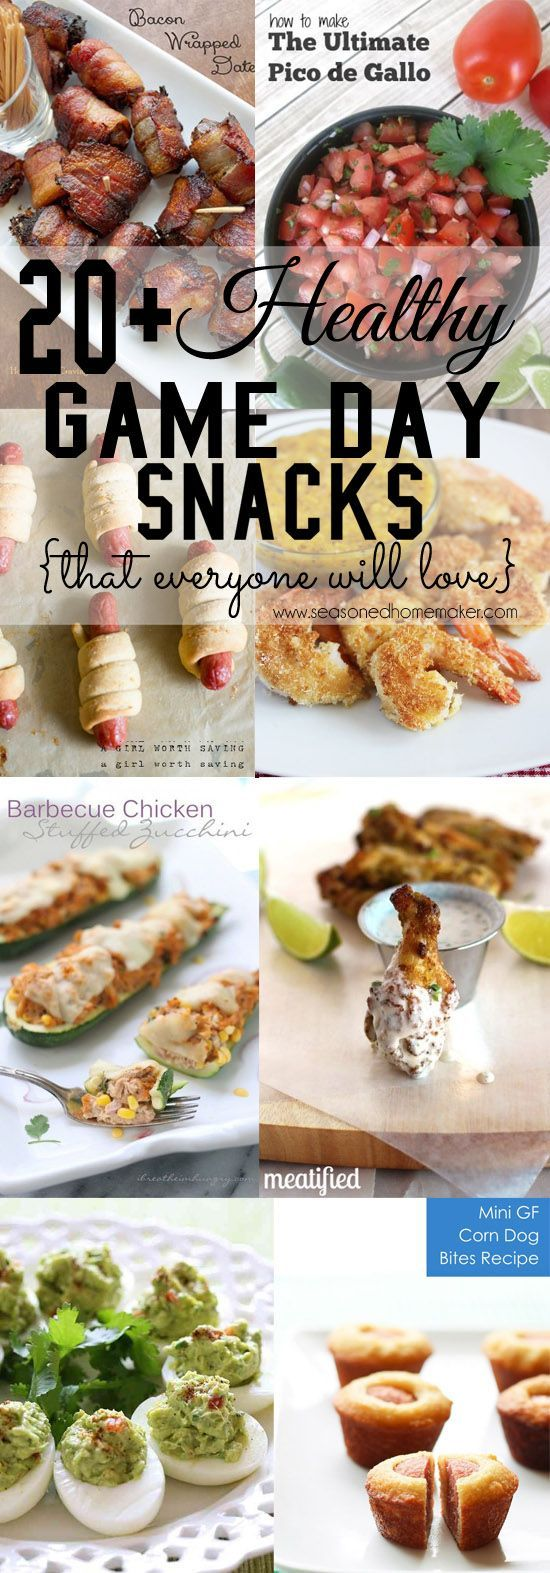 If you follow a gluten-free or paleo diet then party food can be a challenge. I've put together several ideas for Healthy Game Day Snacks that Everyone Will Enjoy - even those who aren't on a restricted diet. The Seasoned Homemaker